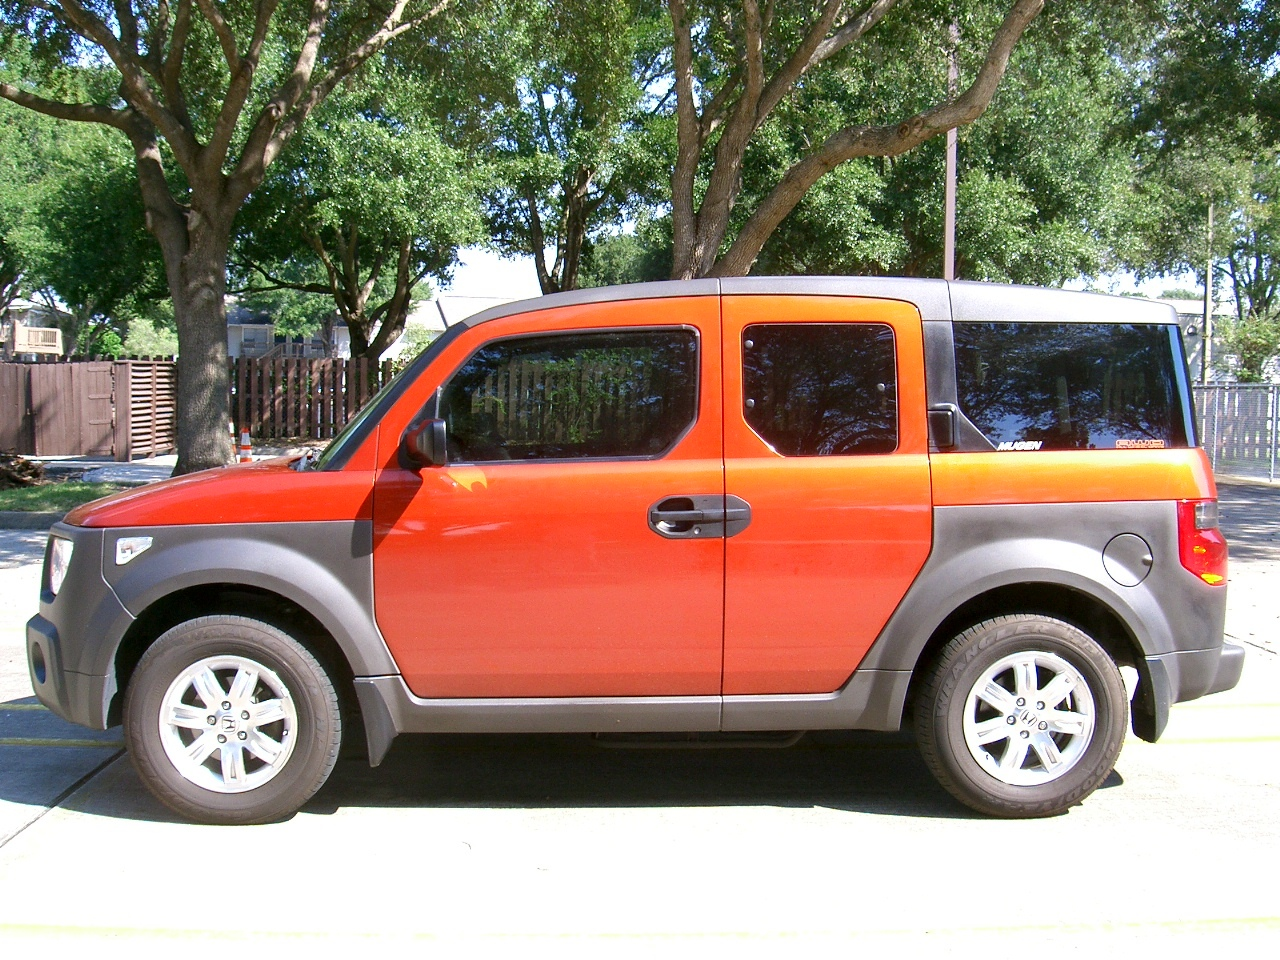 ganzibye's 2003 Honda Element